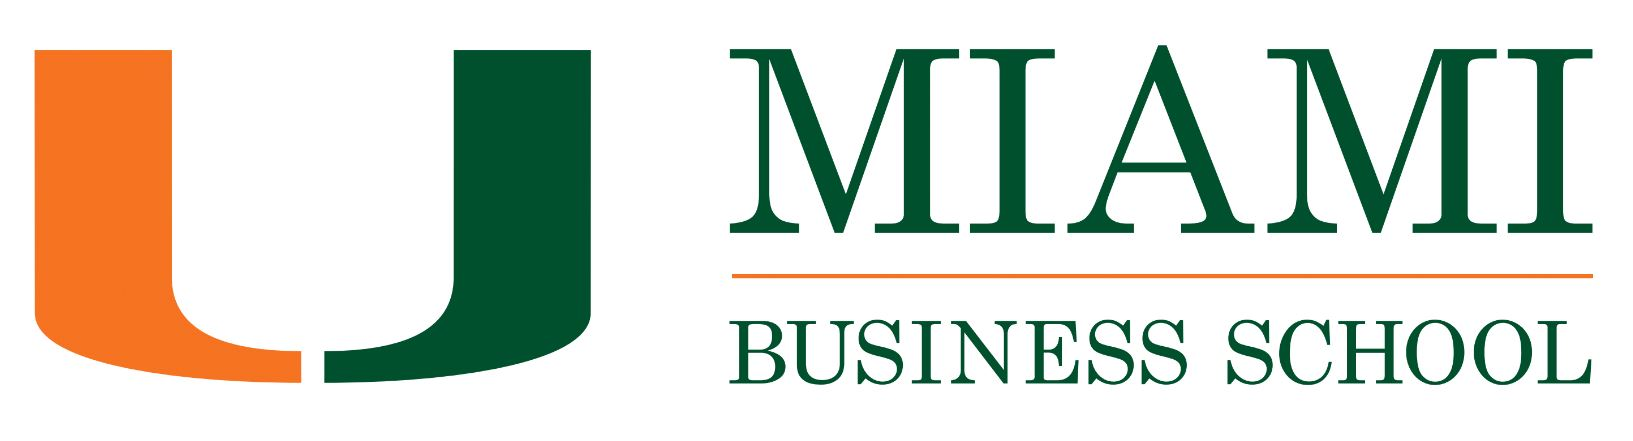 """For 10 years, I served the University of Miami's School of Business as its media relations contact, working closely with the School's deans, faculty and students to build visibility of its programs, faculty research, events, alumni and its unique as the headquarters of Latin American business.  In year one of working together, media coverage tripled compared to each of the three prior years, and by 2011 were up by 500% compared to each of those years. Faculty research and expertise, school news, and leadership insight on business school trends regularly appeared in top tier news outlets such as:  The Wall Street Journal , the  Financial Times , Bloomberg Businessweek,  The New York Times ,  Marketplace Radio ,  PBS's  """"Nightly Business Report,"""" The Associated Press,  Forbes,   Investor's Business Daily , and  The Washington Post ."""